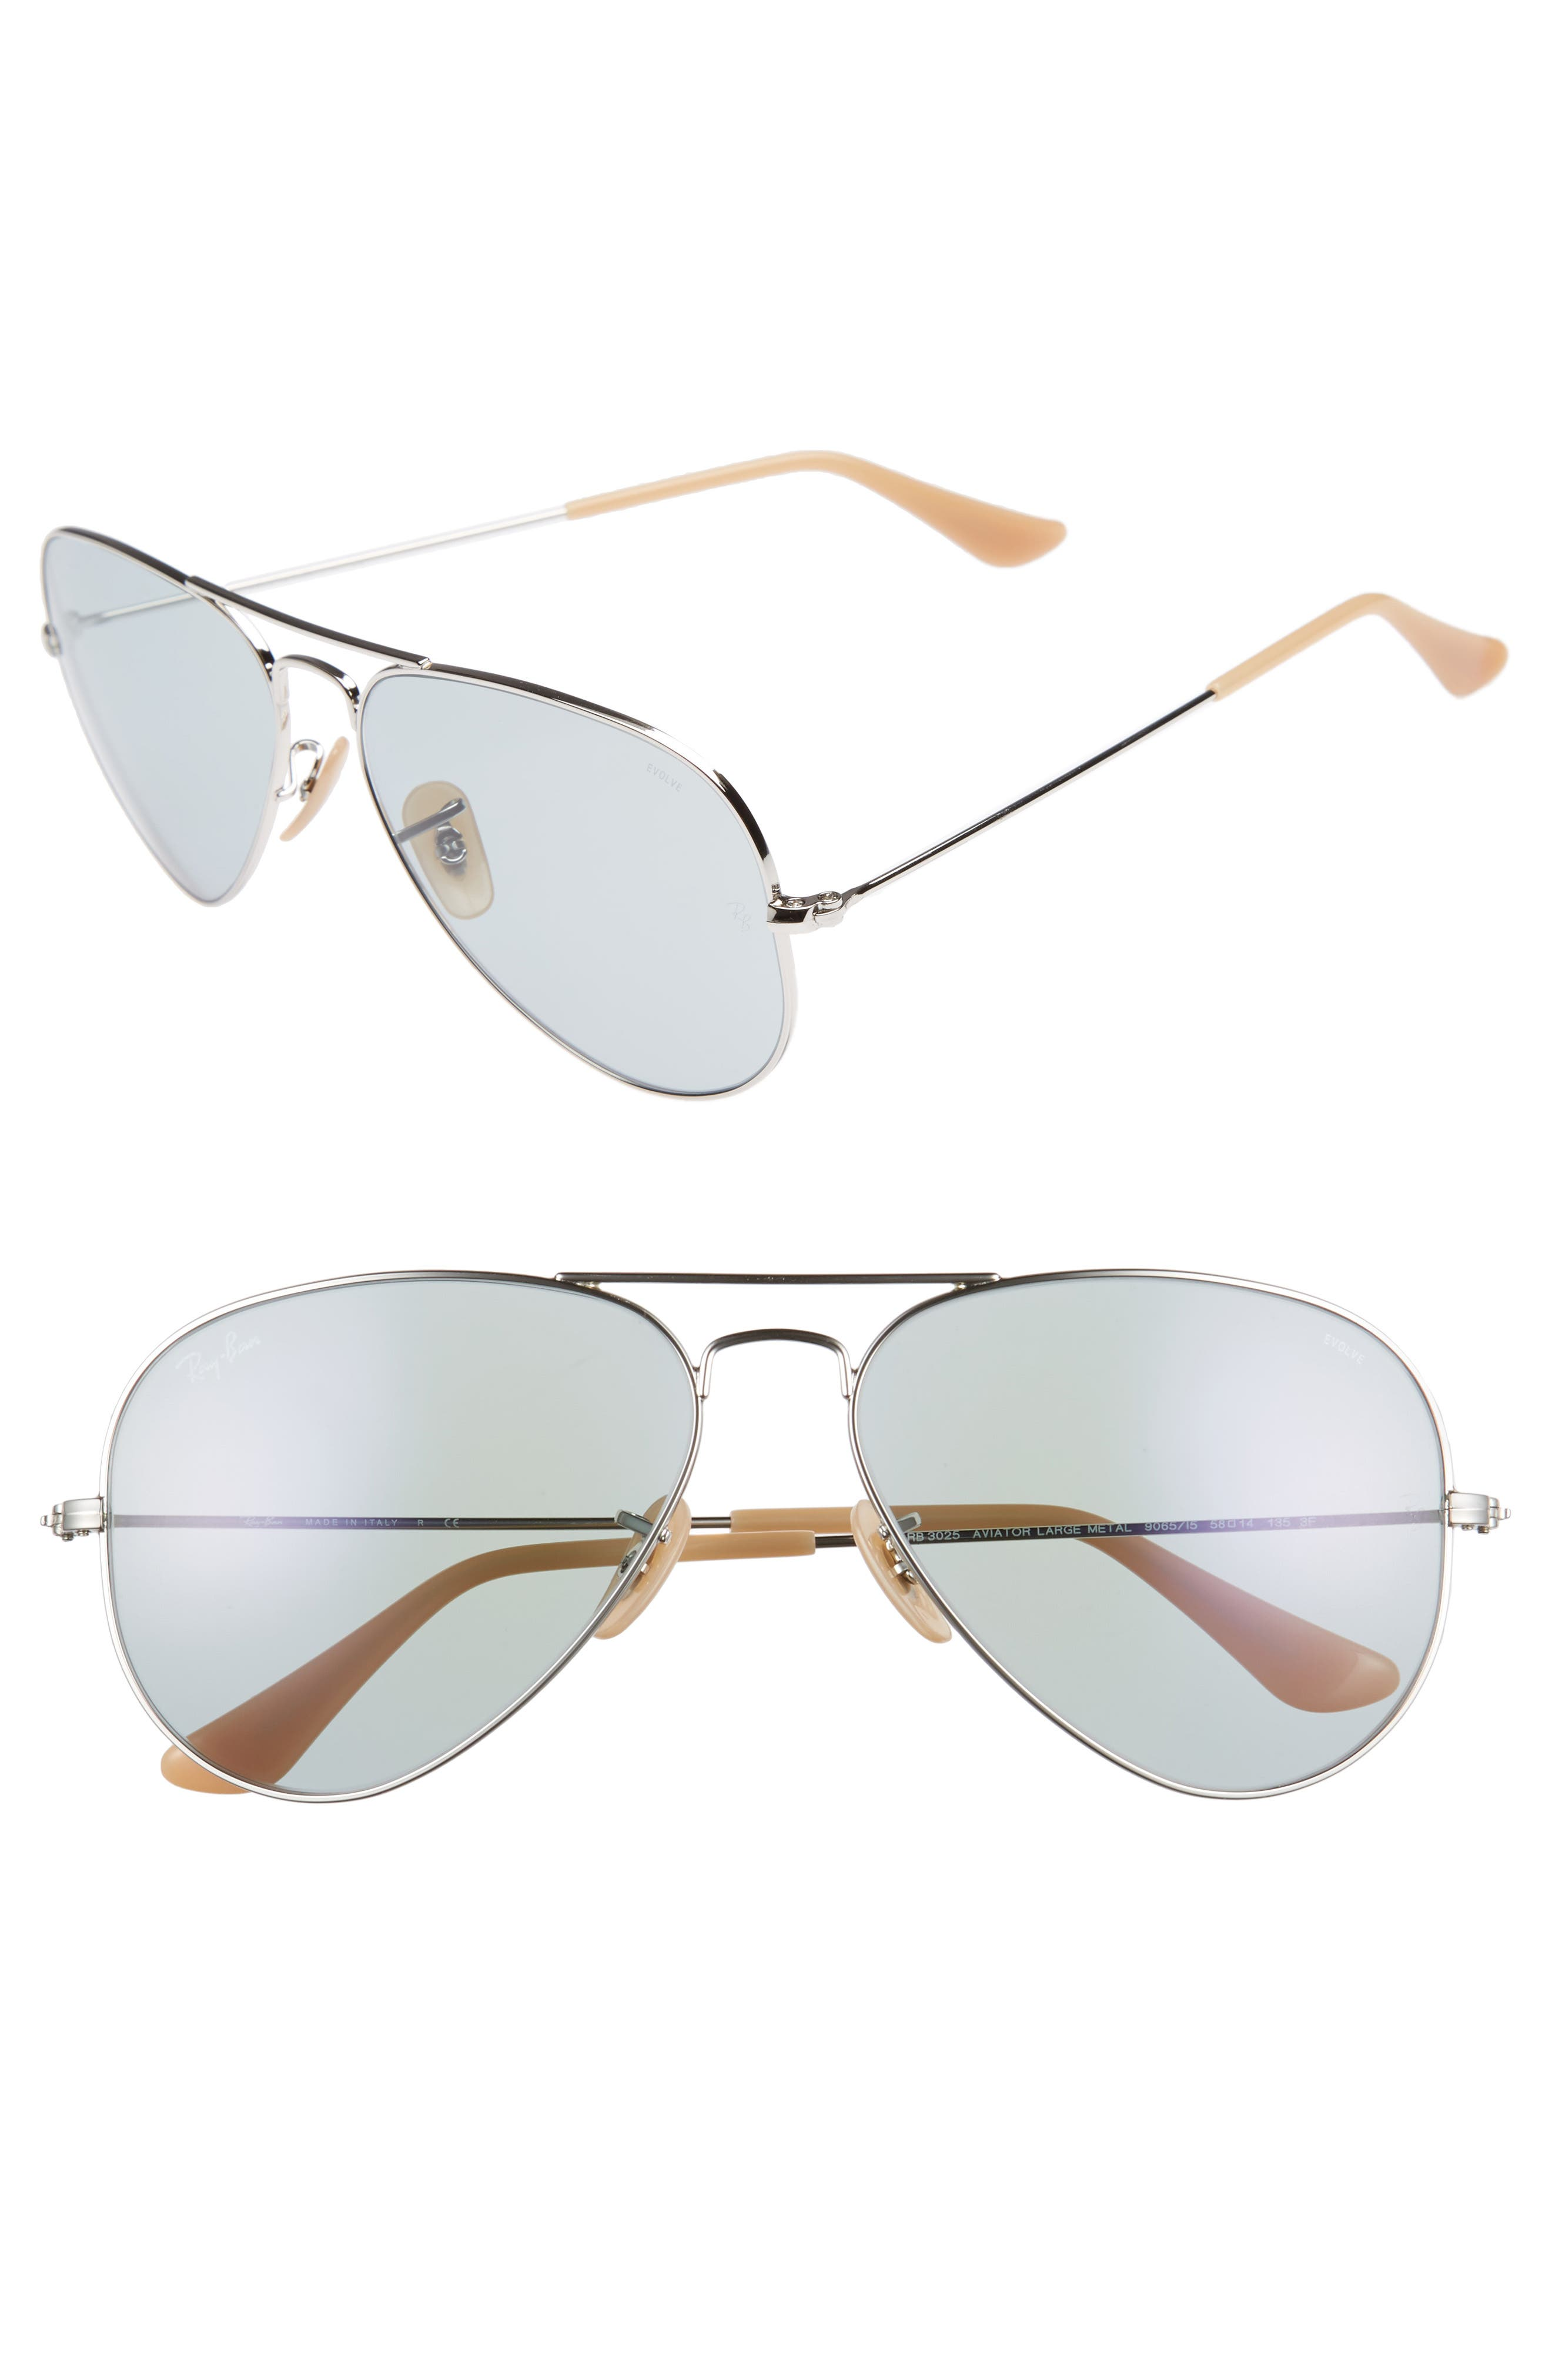 58mm Photochromic Aviator Sunglasses,                         Main,                         color, Silver Blue